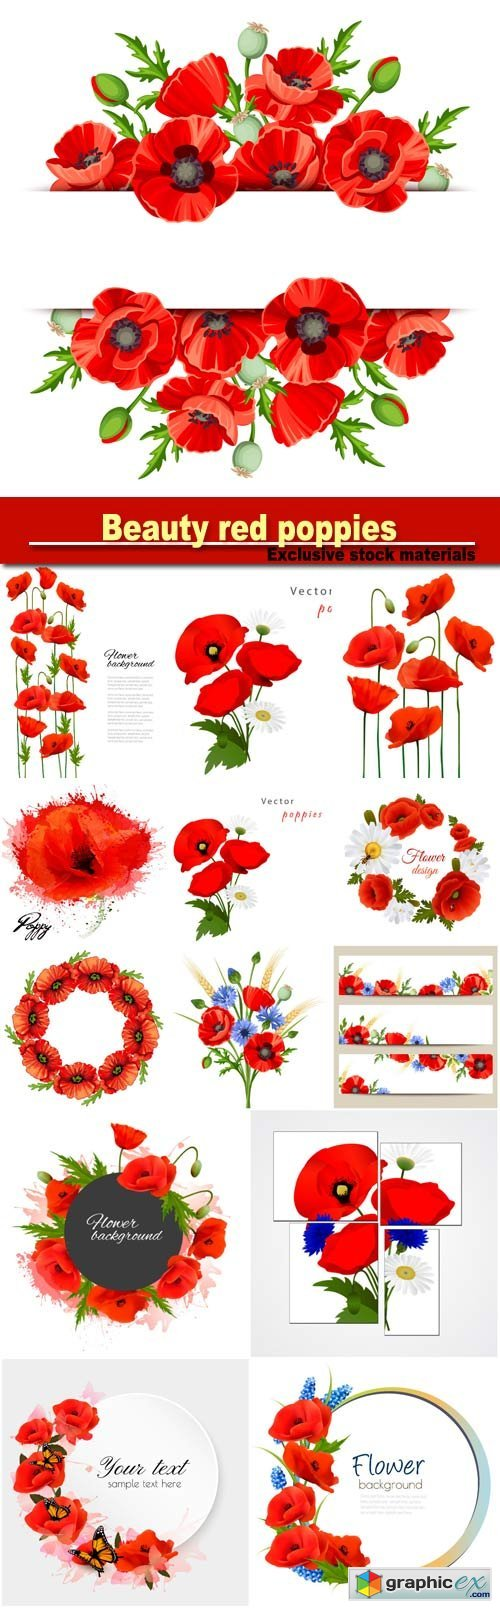 Beautiful background with beauty red poppies, vector floral frame